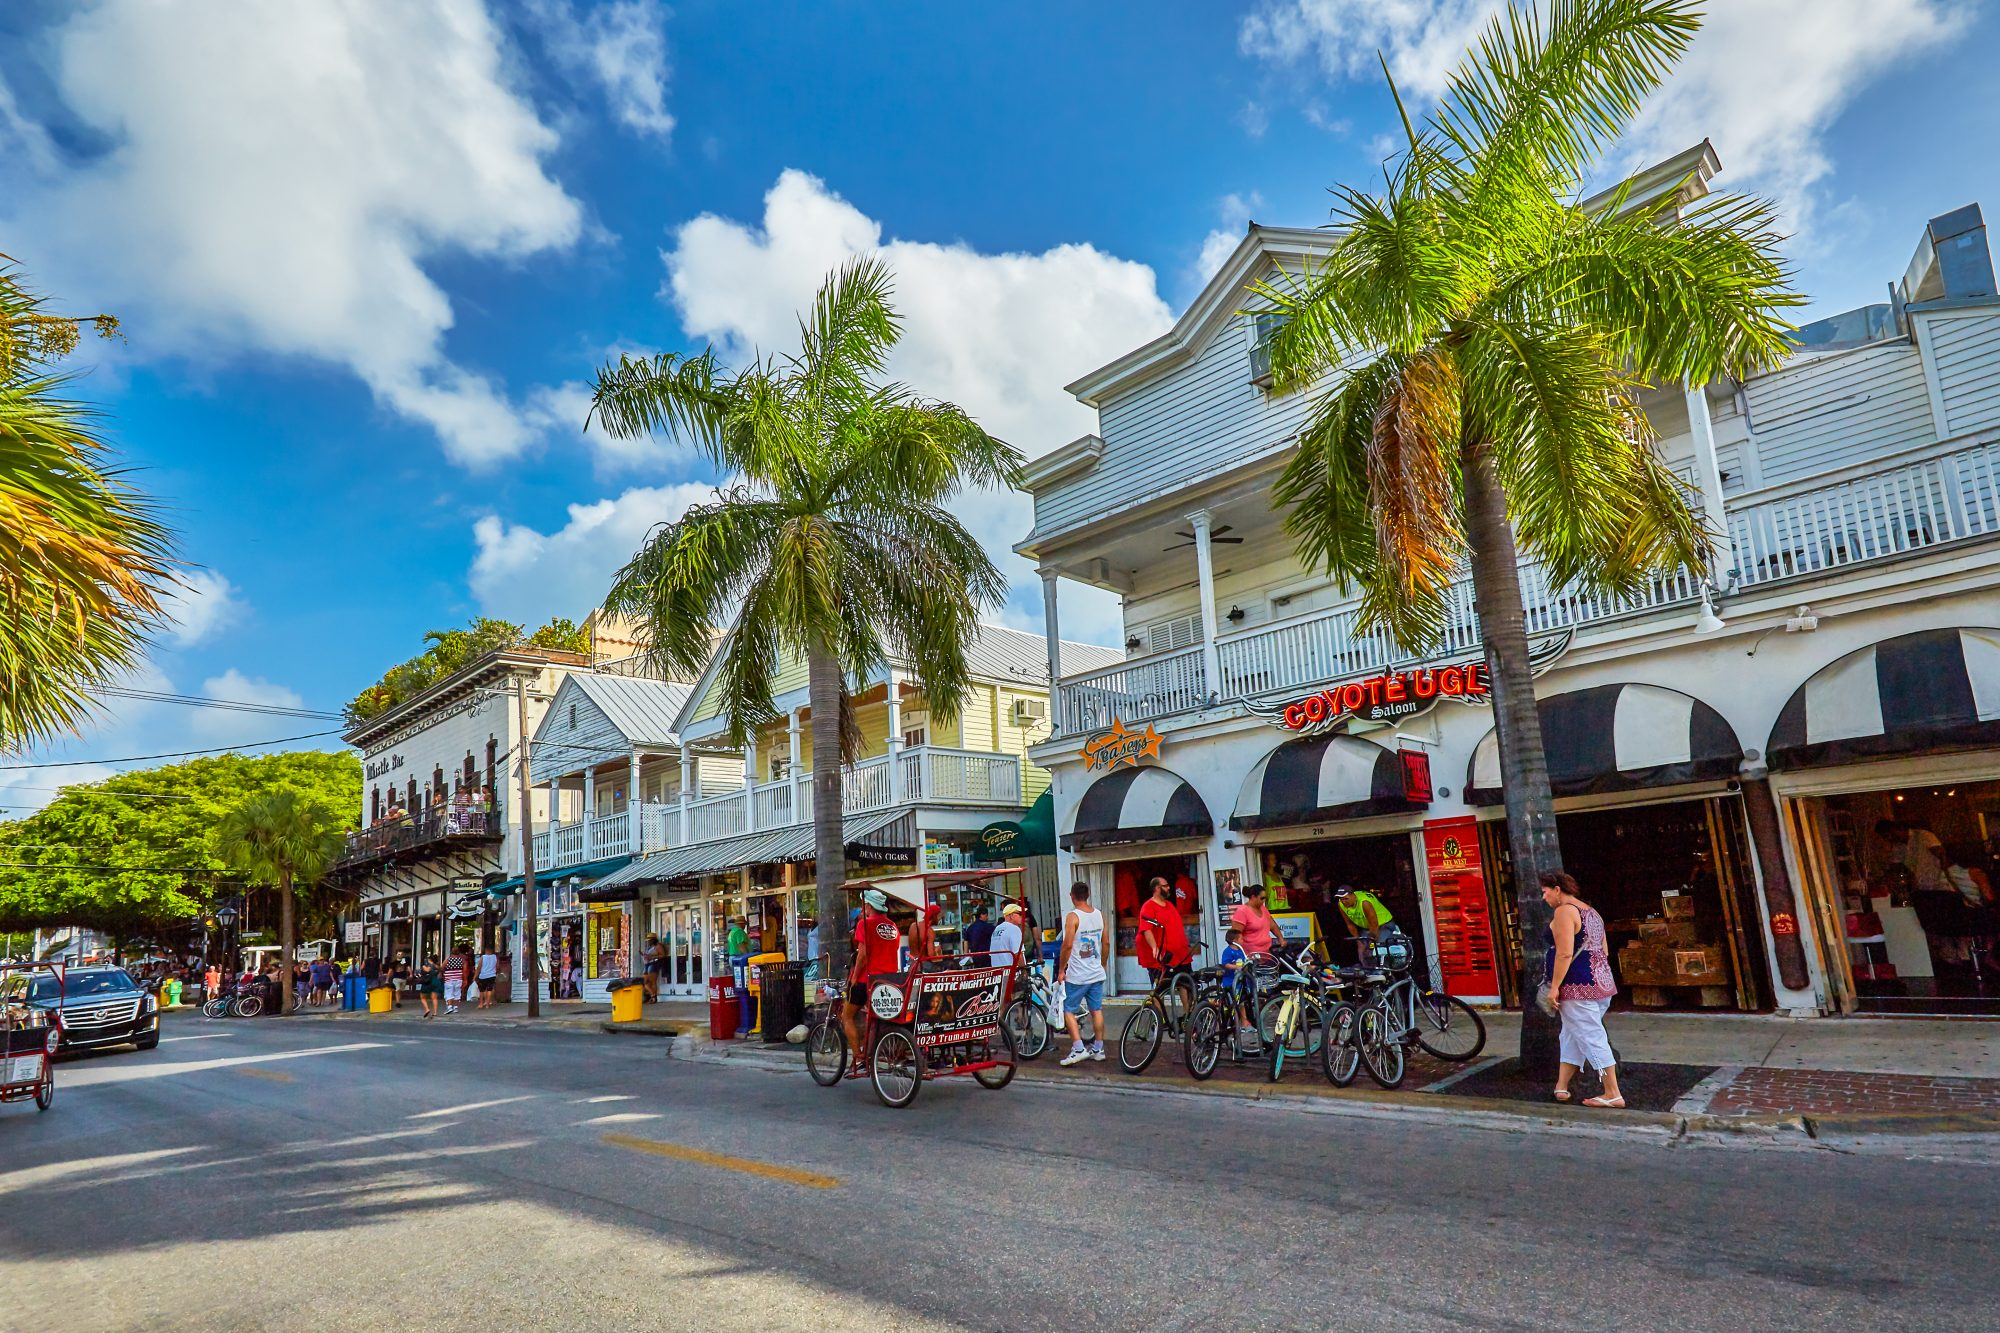 There's no doubt that Duval Street occupies the heart of all the action in Key West. Stretching from Mallory Square to the Southernmost Point, this main drag is lined with outdoor cafes, funky boutiques, art galleries, and some of the most famous bars and saloons in the country.